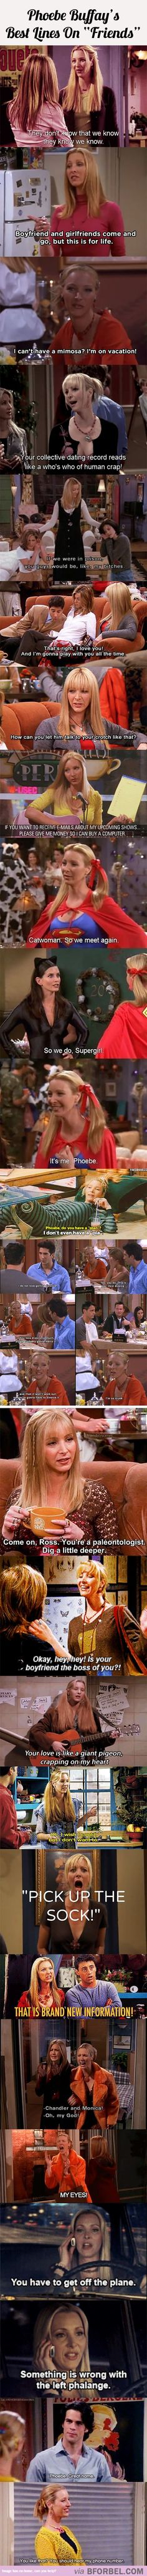 Phoebe is the best